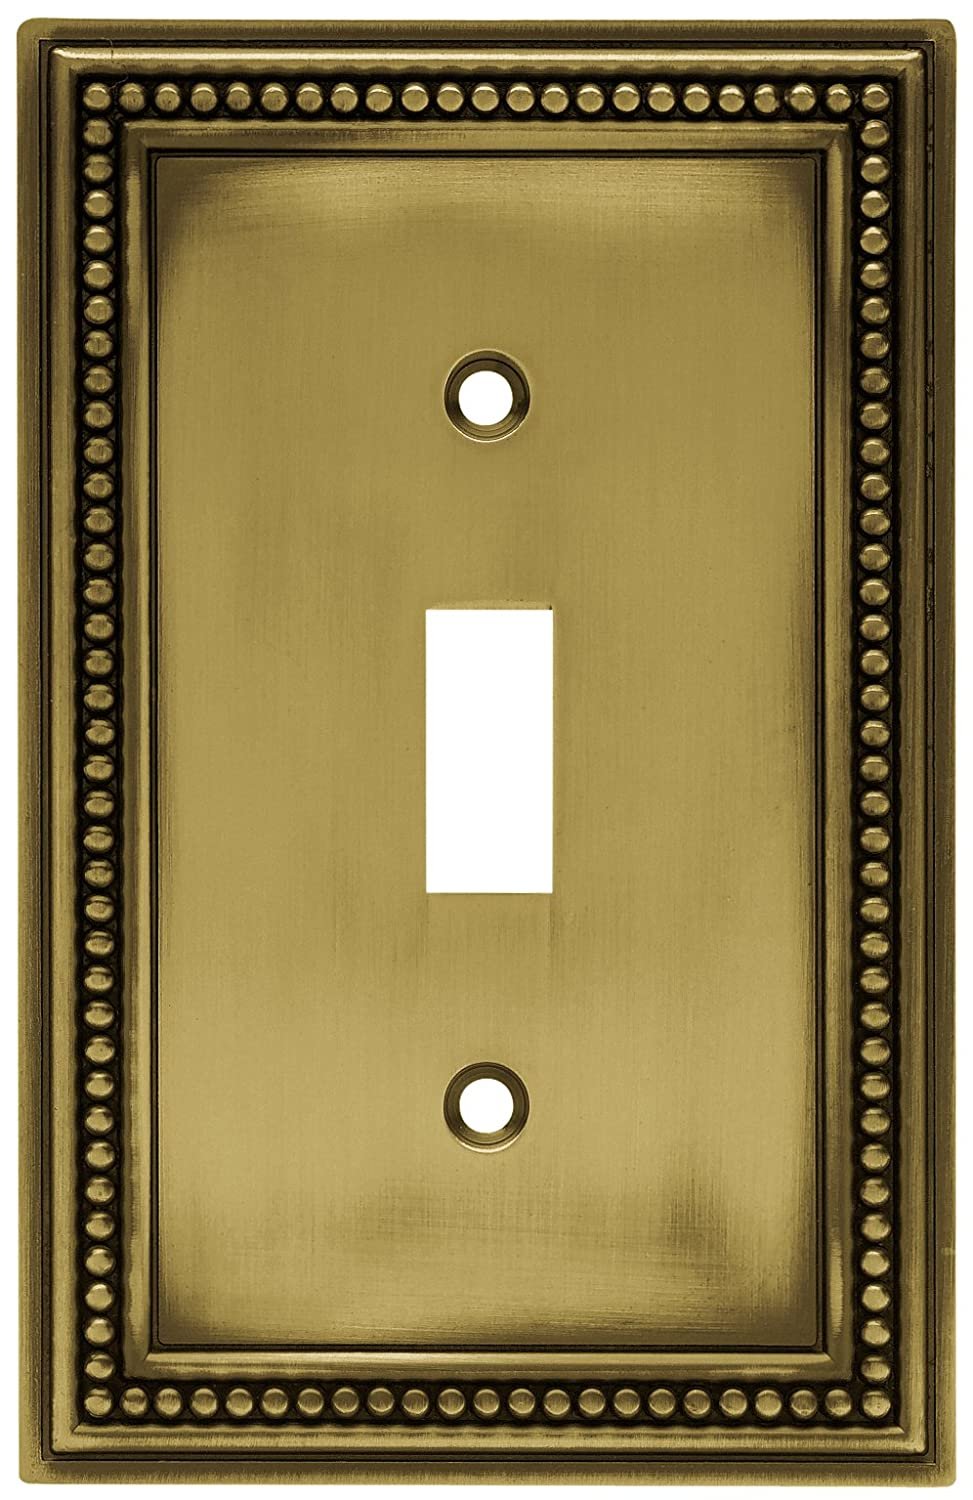 Wall Plates | Amazon.com | Electrical - Wall Plates & Accessories